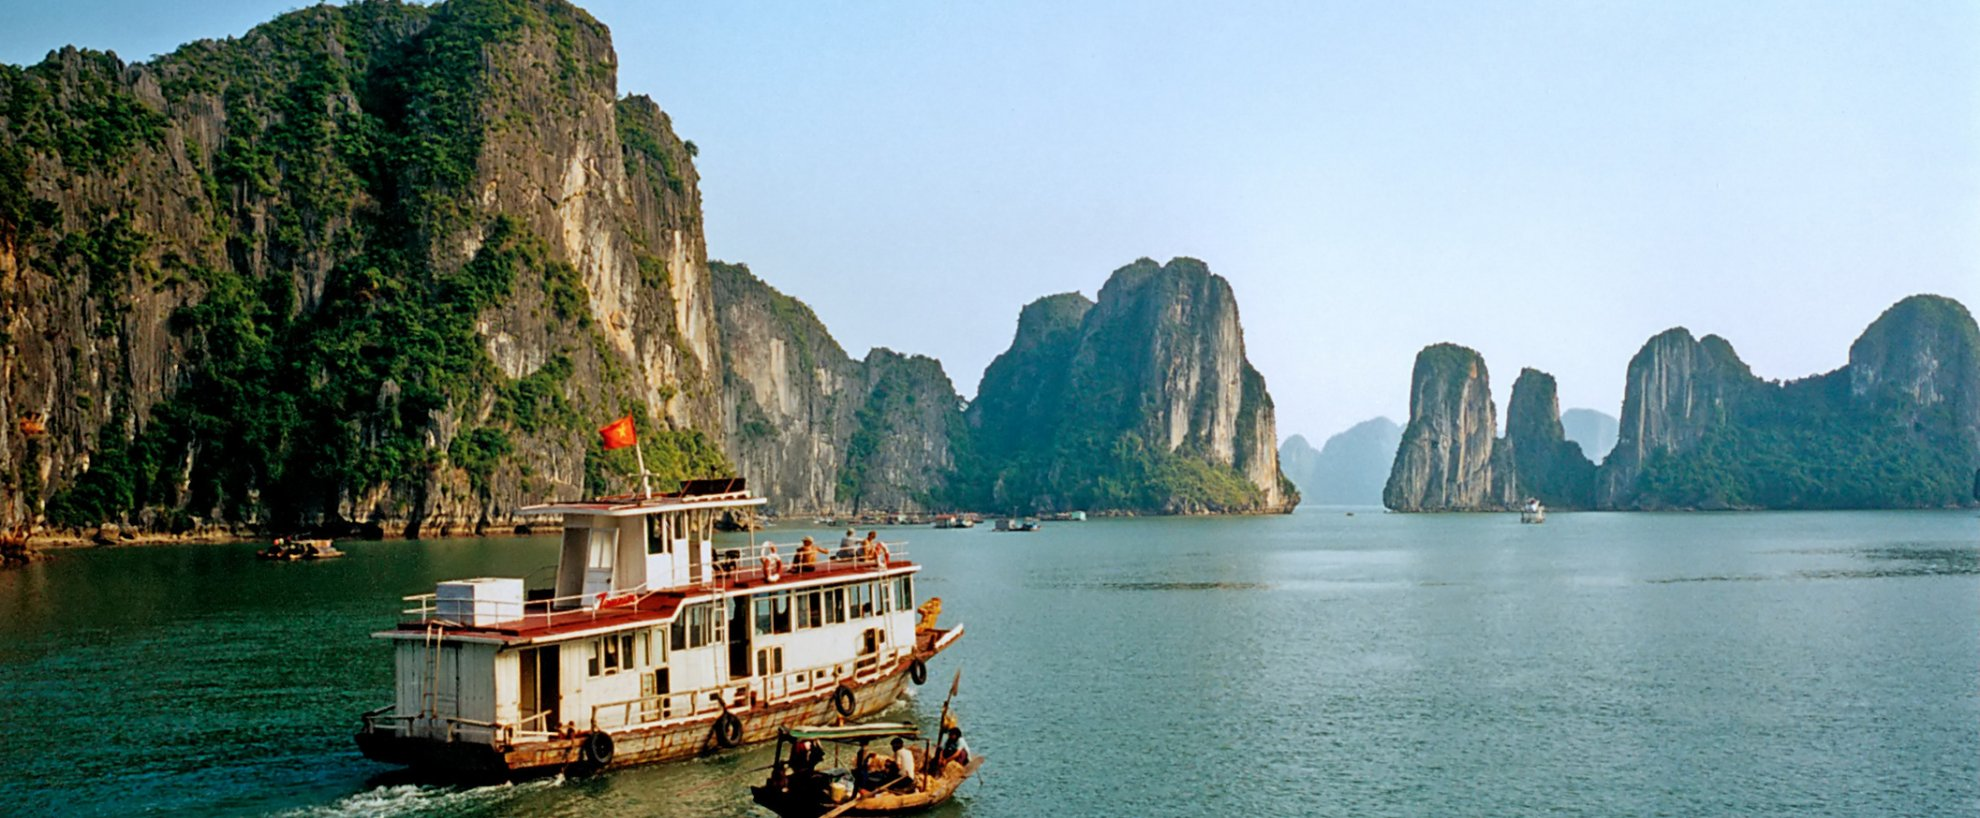 Vietnam Ha Long Bucht